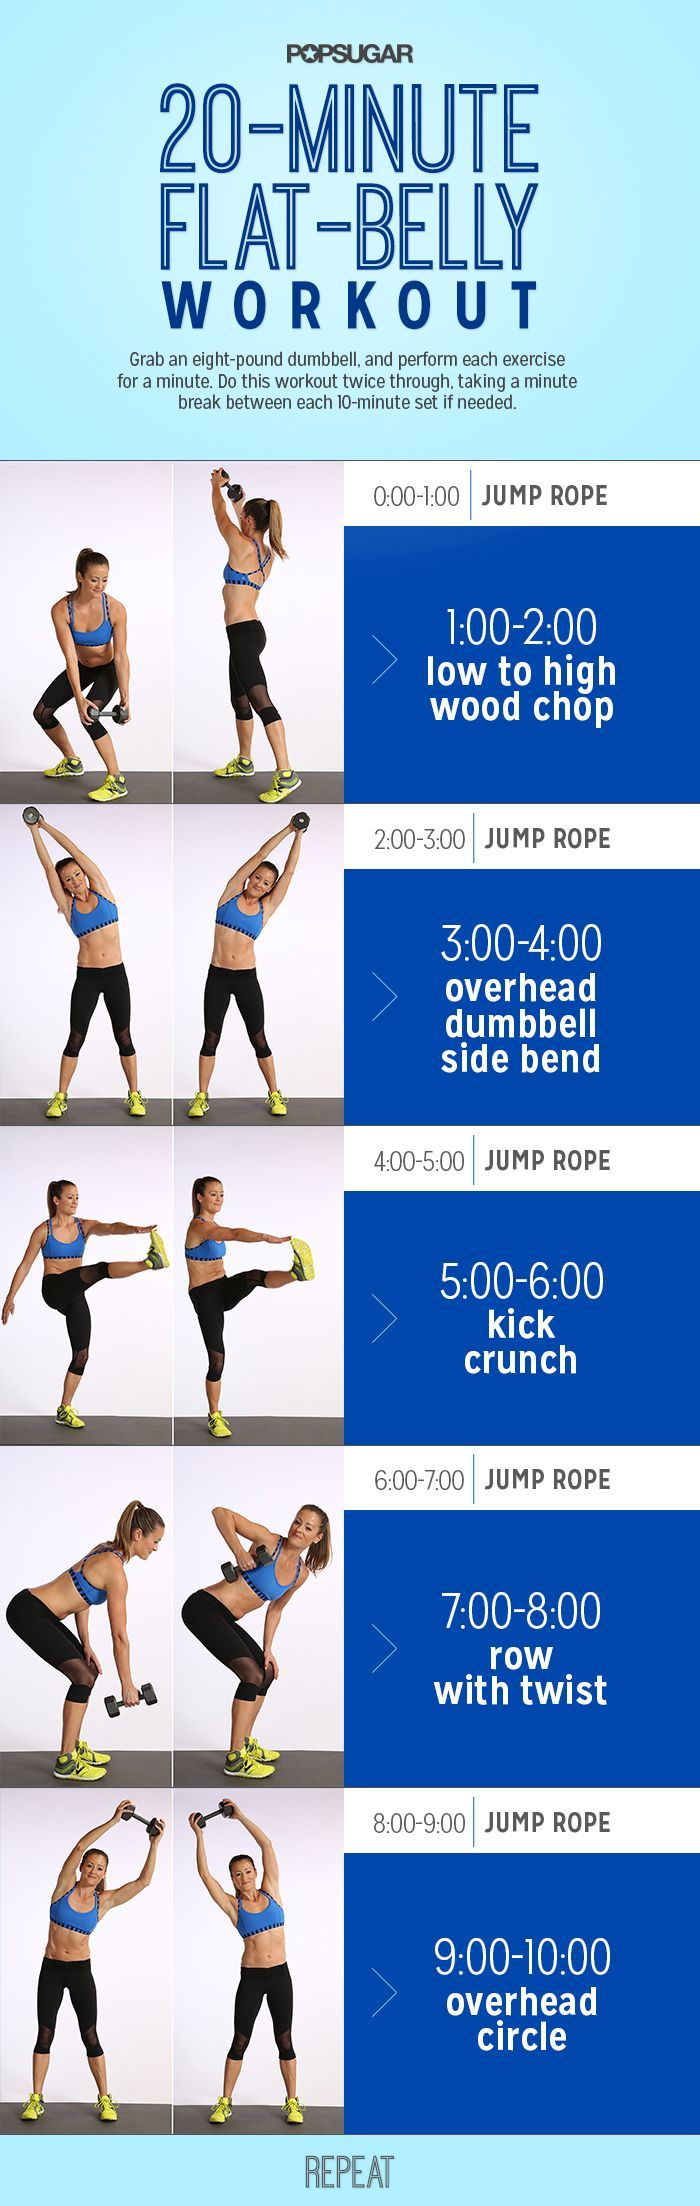 crunch-less flat belly workout